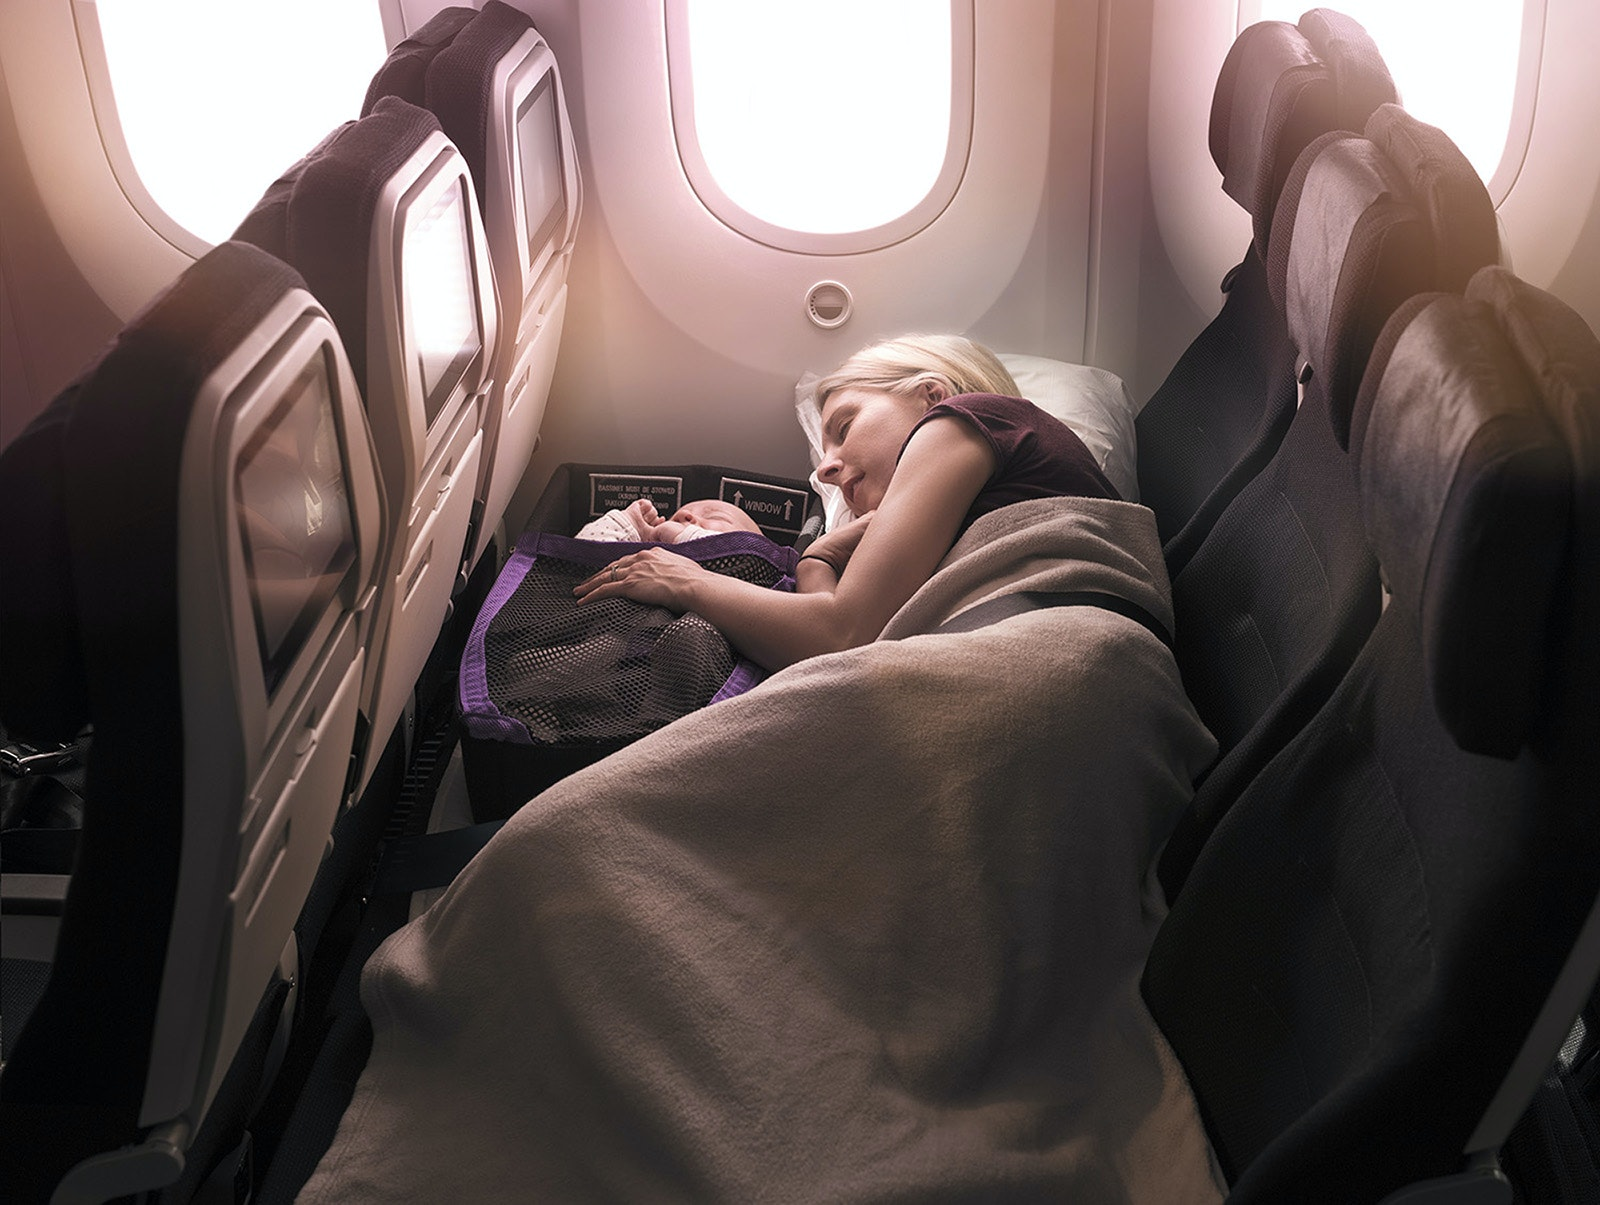 """Air New Zealand introduced its """"Skycouch"""" configuration in economy class, which is now being copied by airlines like Joon."""